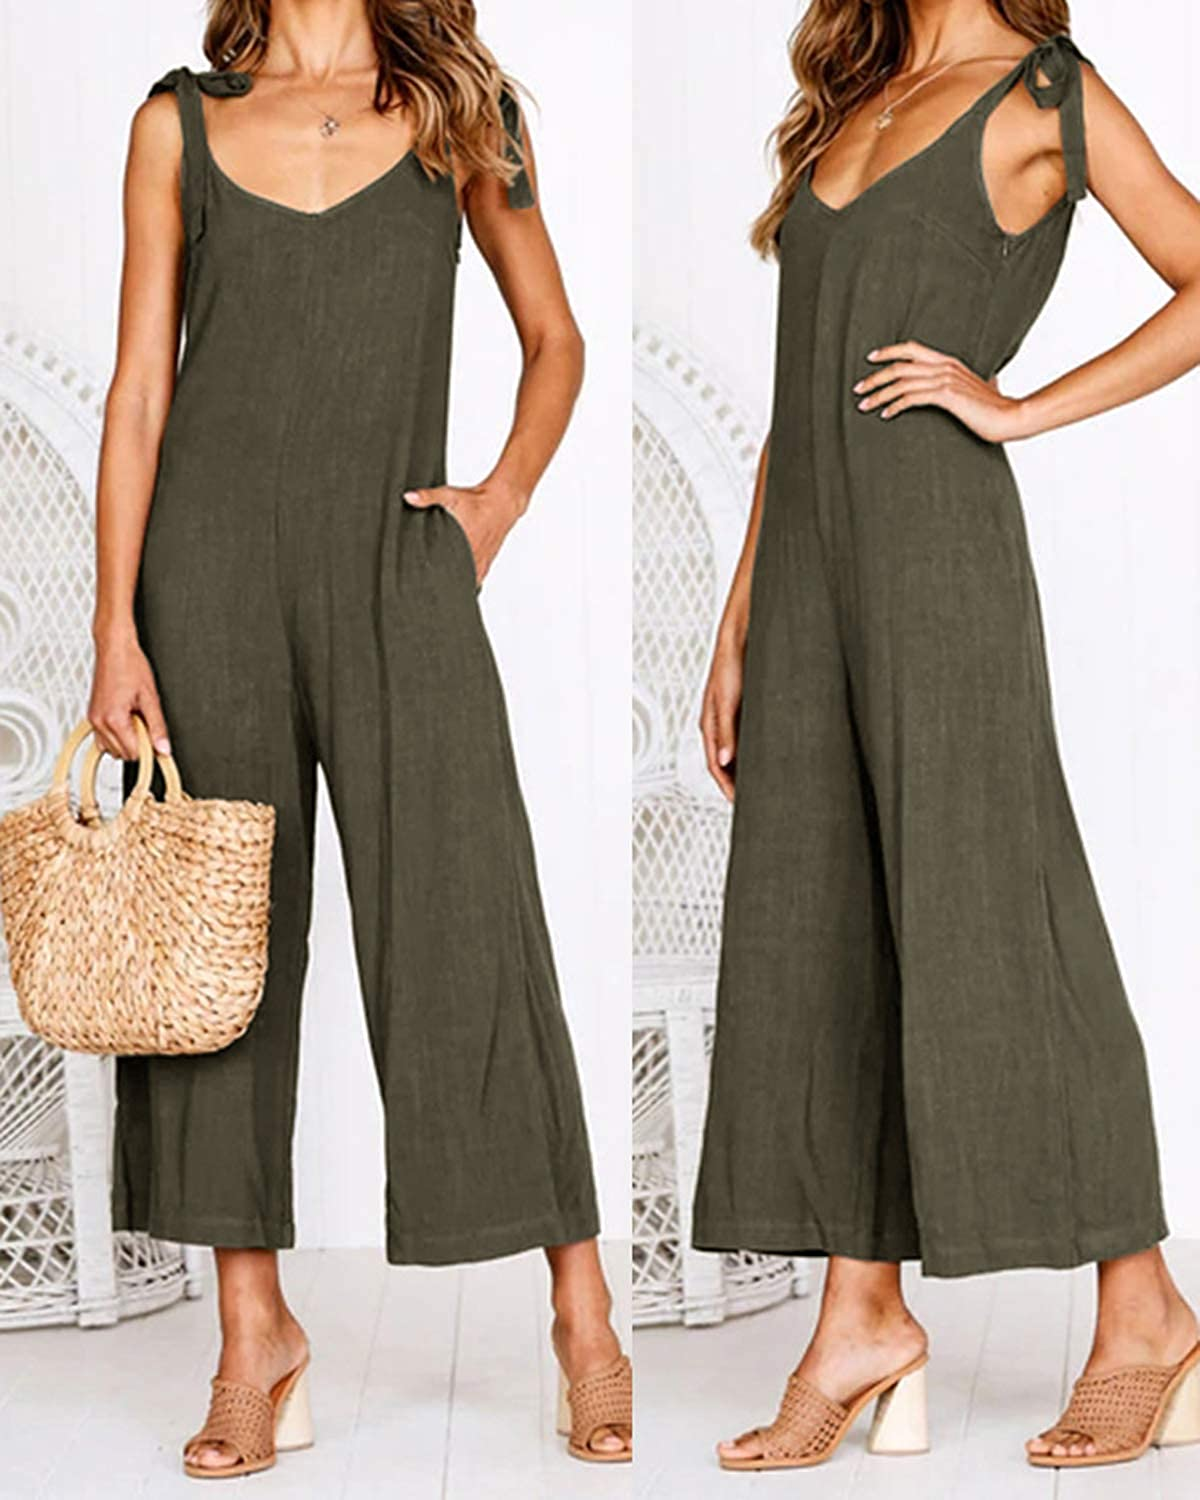 Unifizz Women Sleeveless V Neck Wide Leg Backless Solid Loose Long Pant Jumpsuit Romper with Pockets